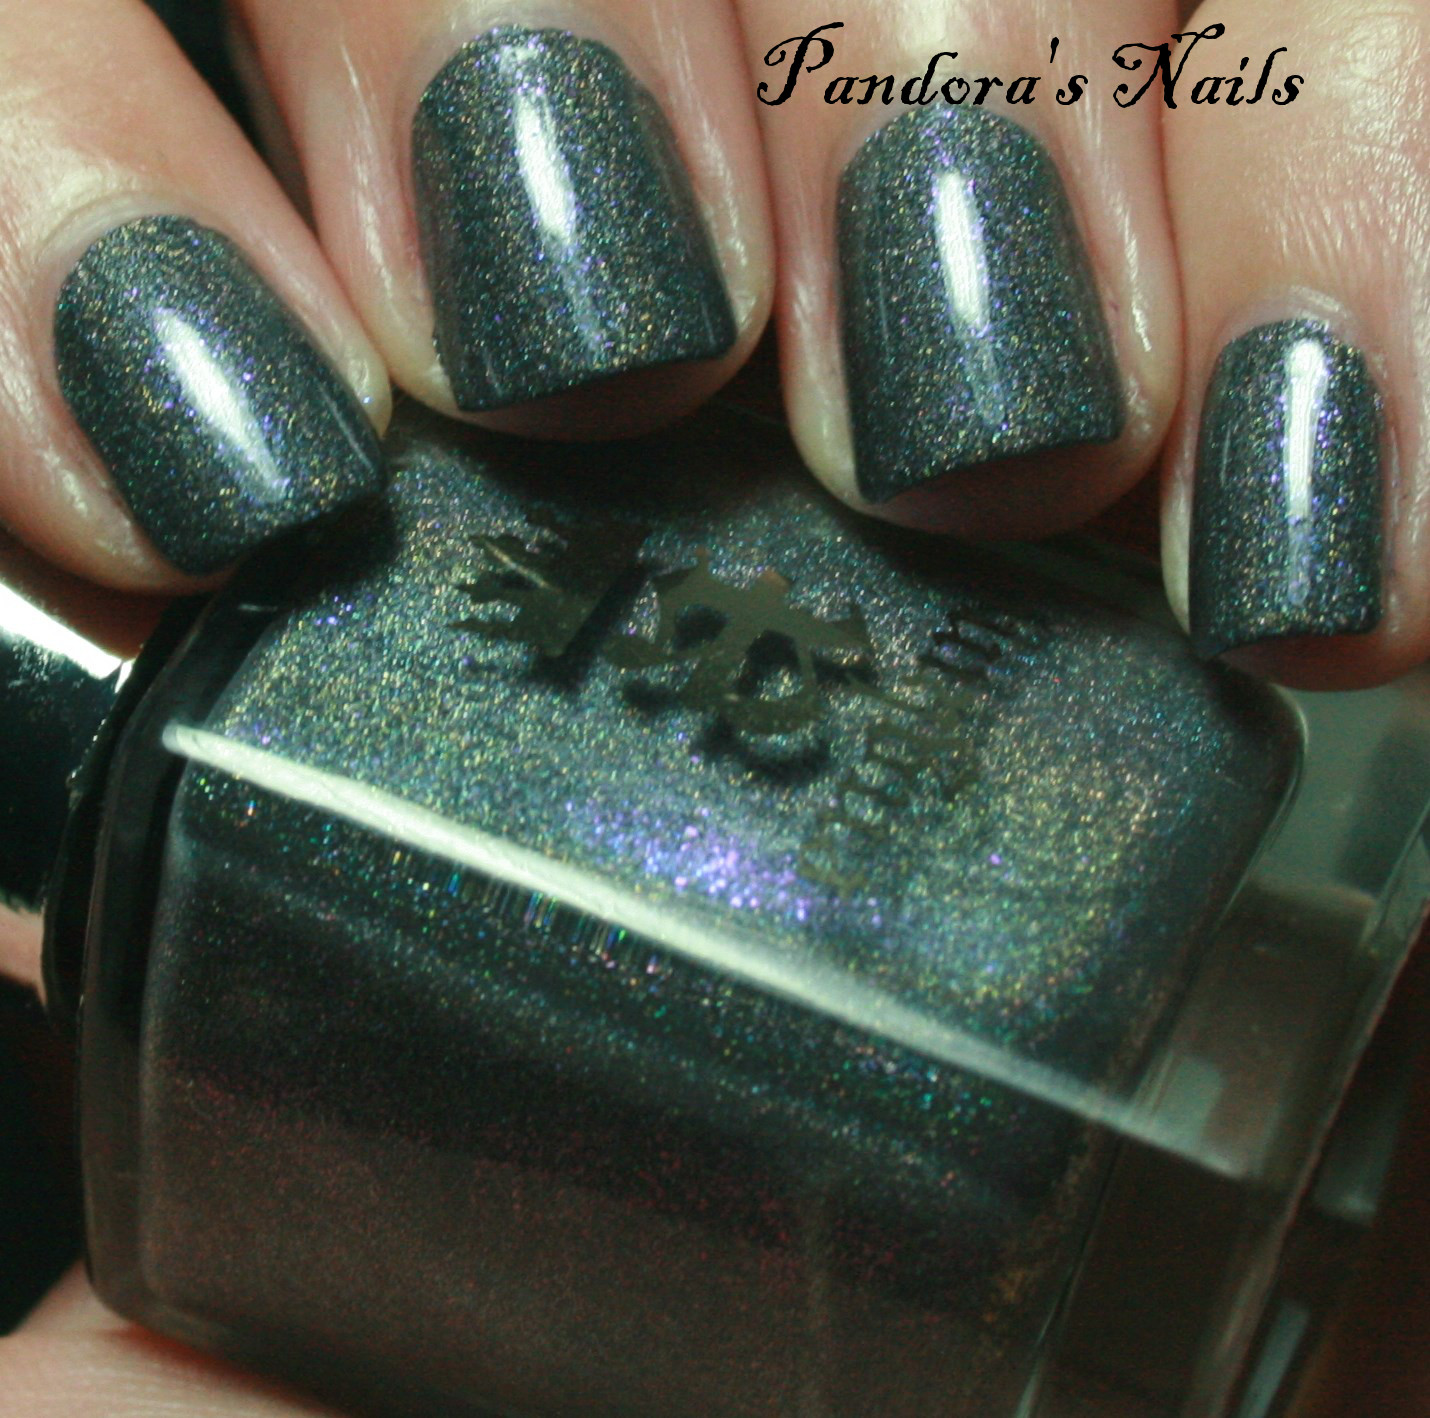 Pandora\'s Nails: a-england Jane Morris and Lynnderella Lucky Numbers